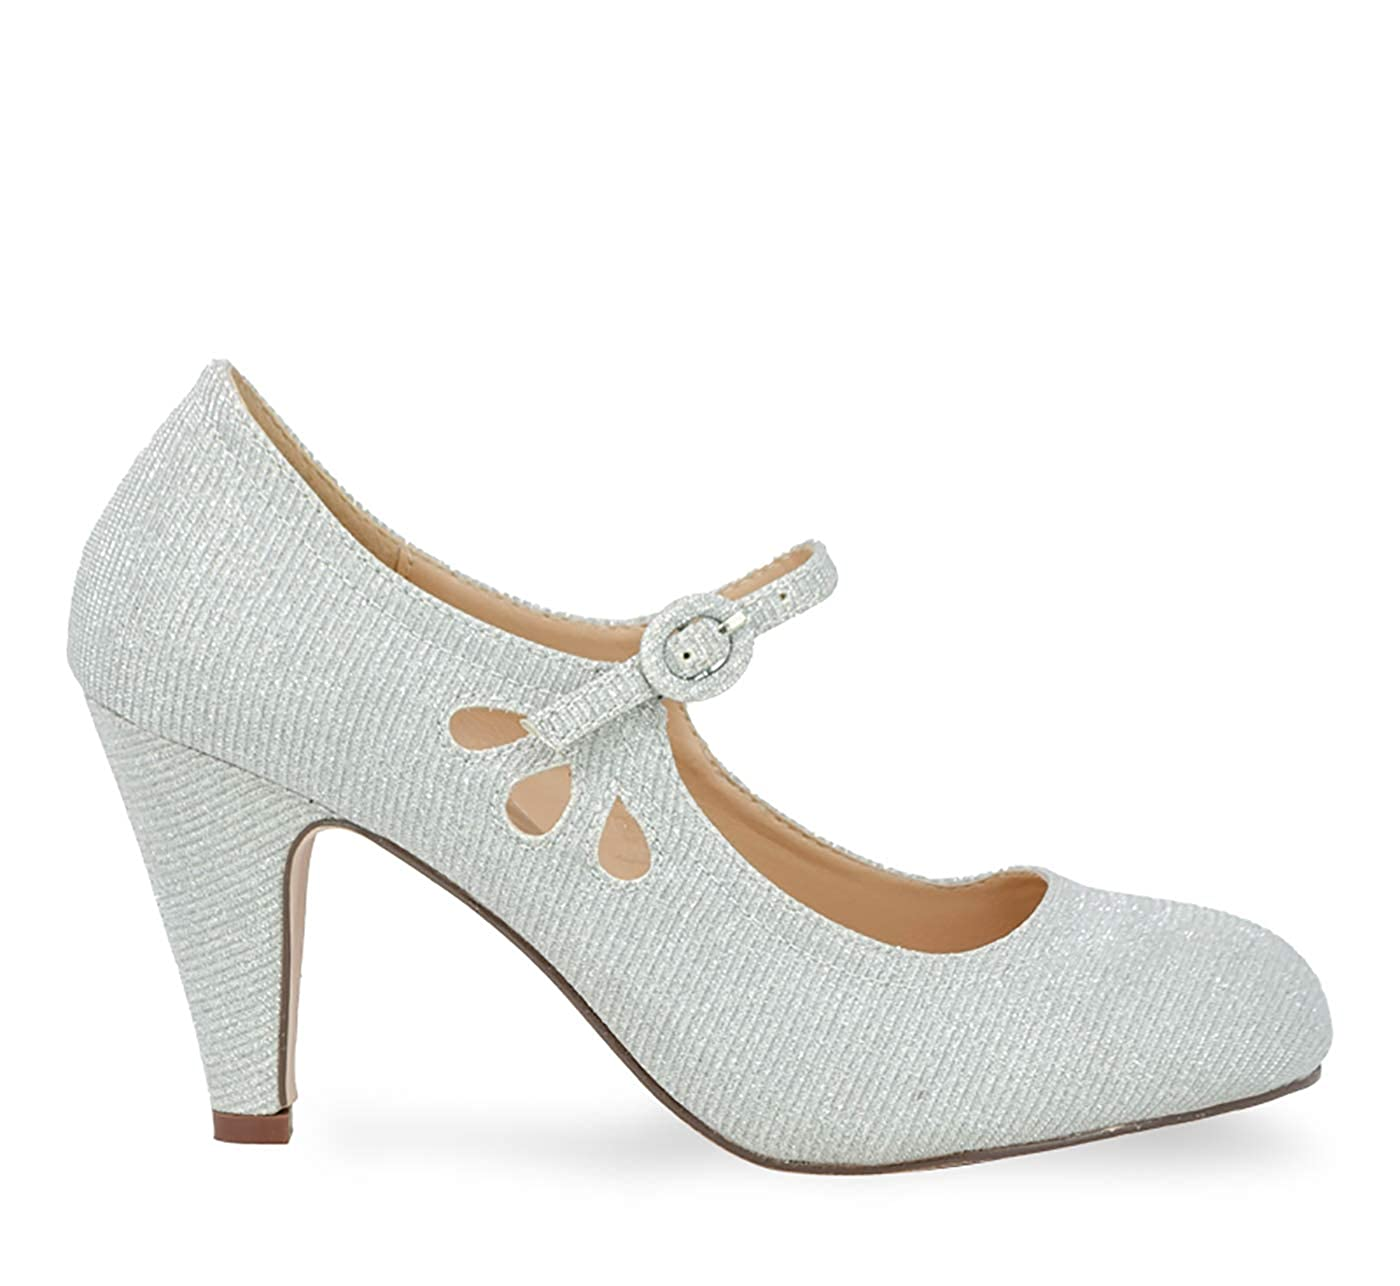 Vintage Heels, Retro Heels, Pumps, Shoes Chase & Chloe Kimmy-21 Womens Round Toe Pierced Mid Heel Mary Jane Style Dress Pumps $45.46 AT vintagedancer.com